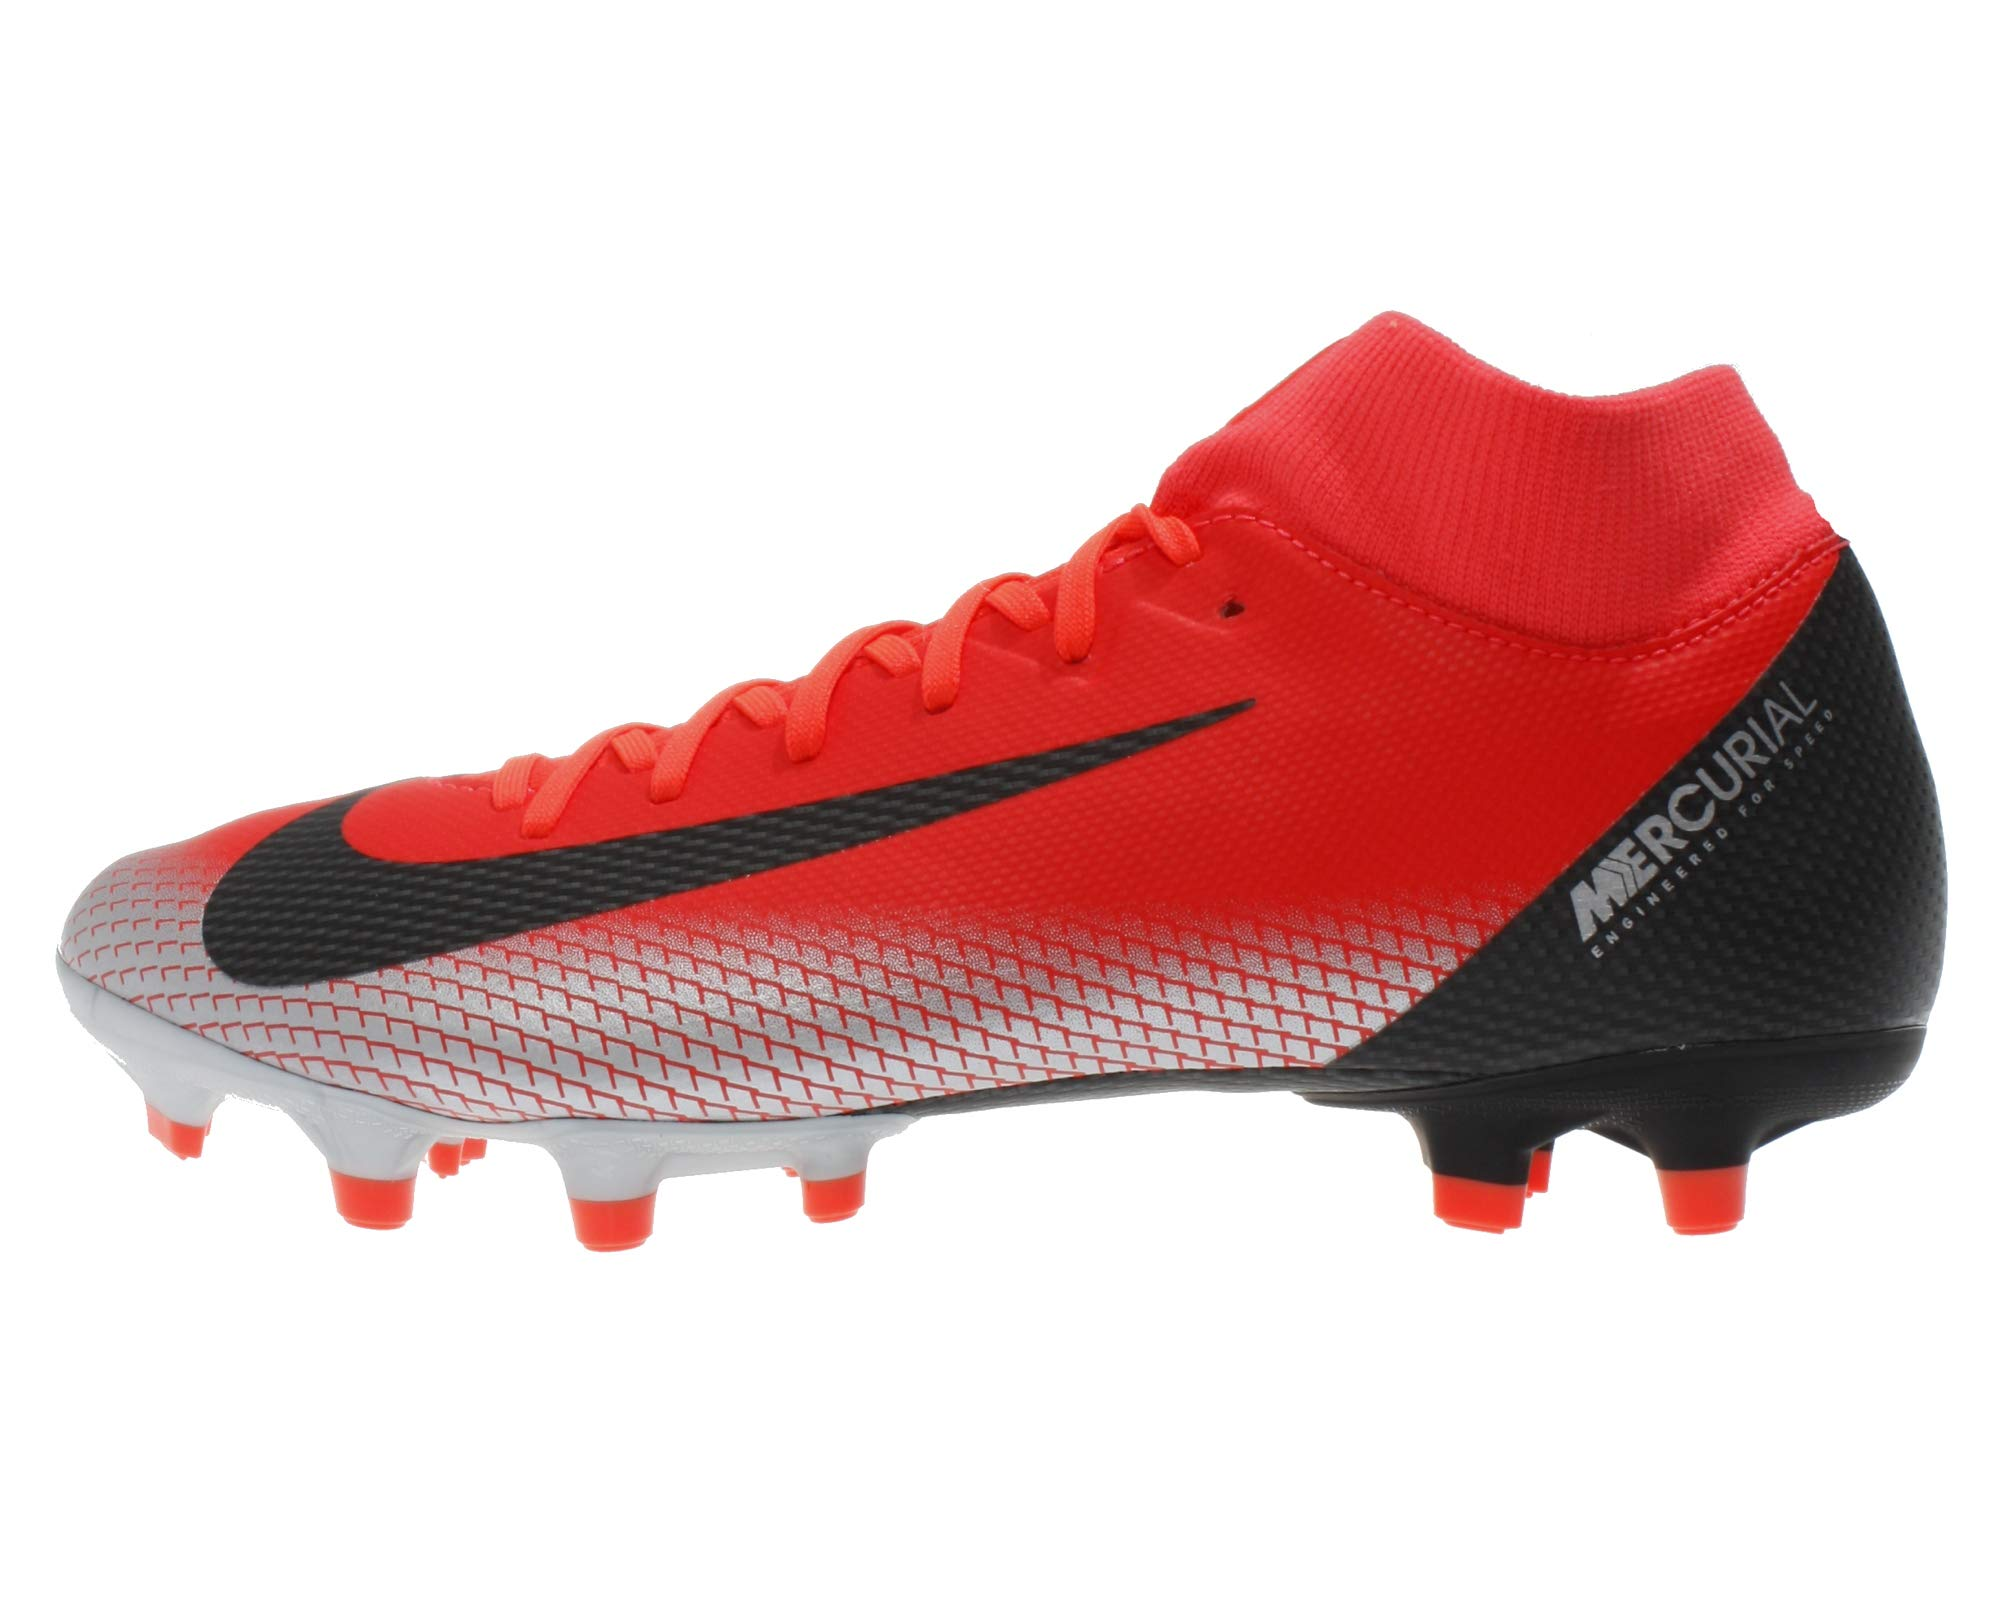 9cb139f5d Nike Superfly 6 Academy (MG) Men s Multi-Ground Soccer Cleats (11.5)